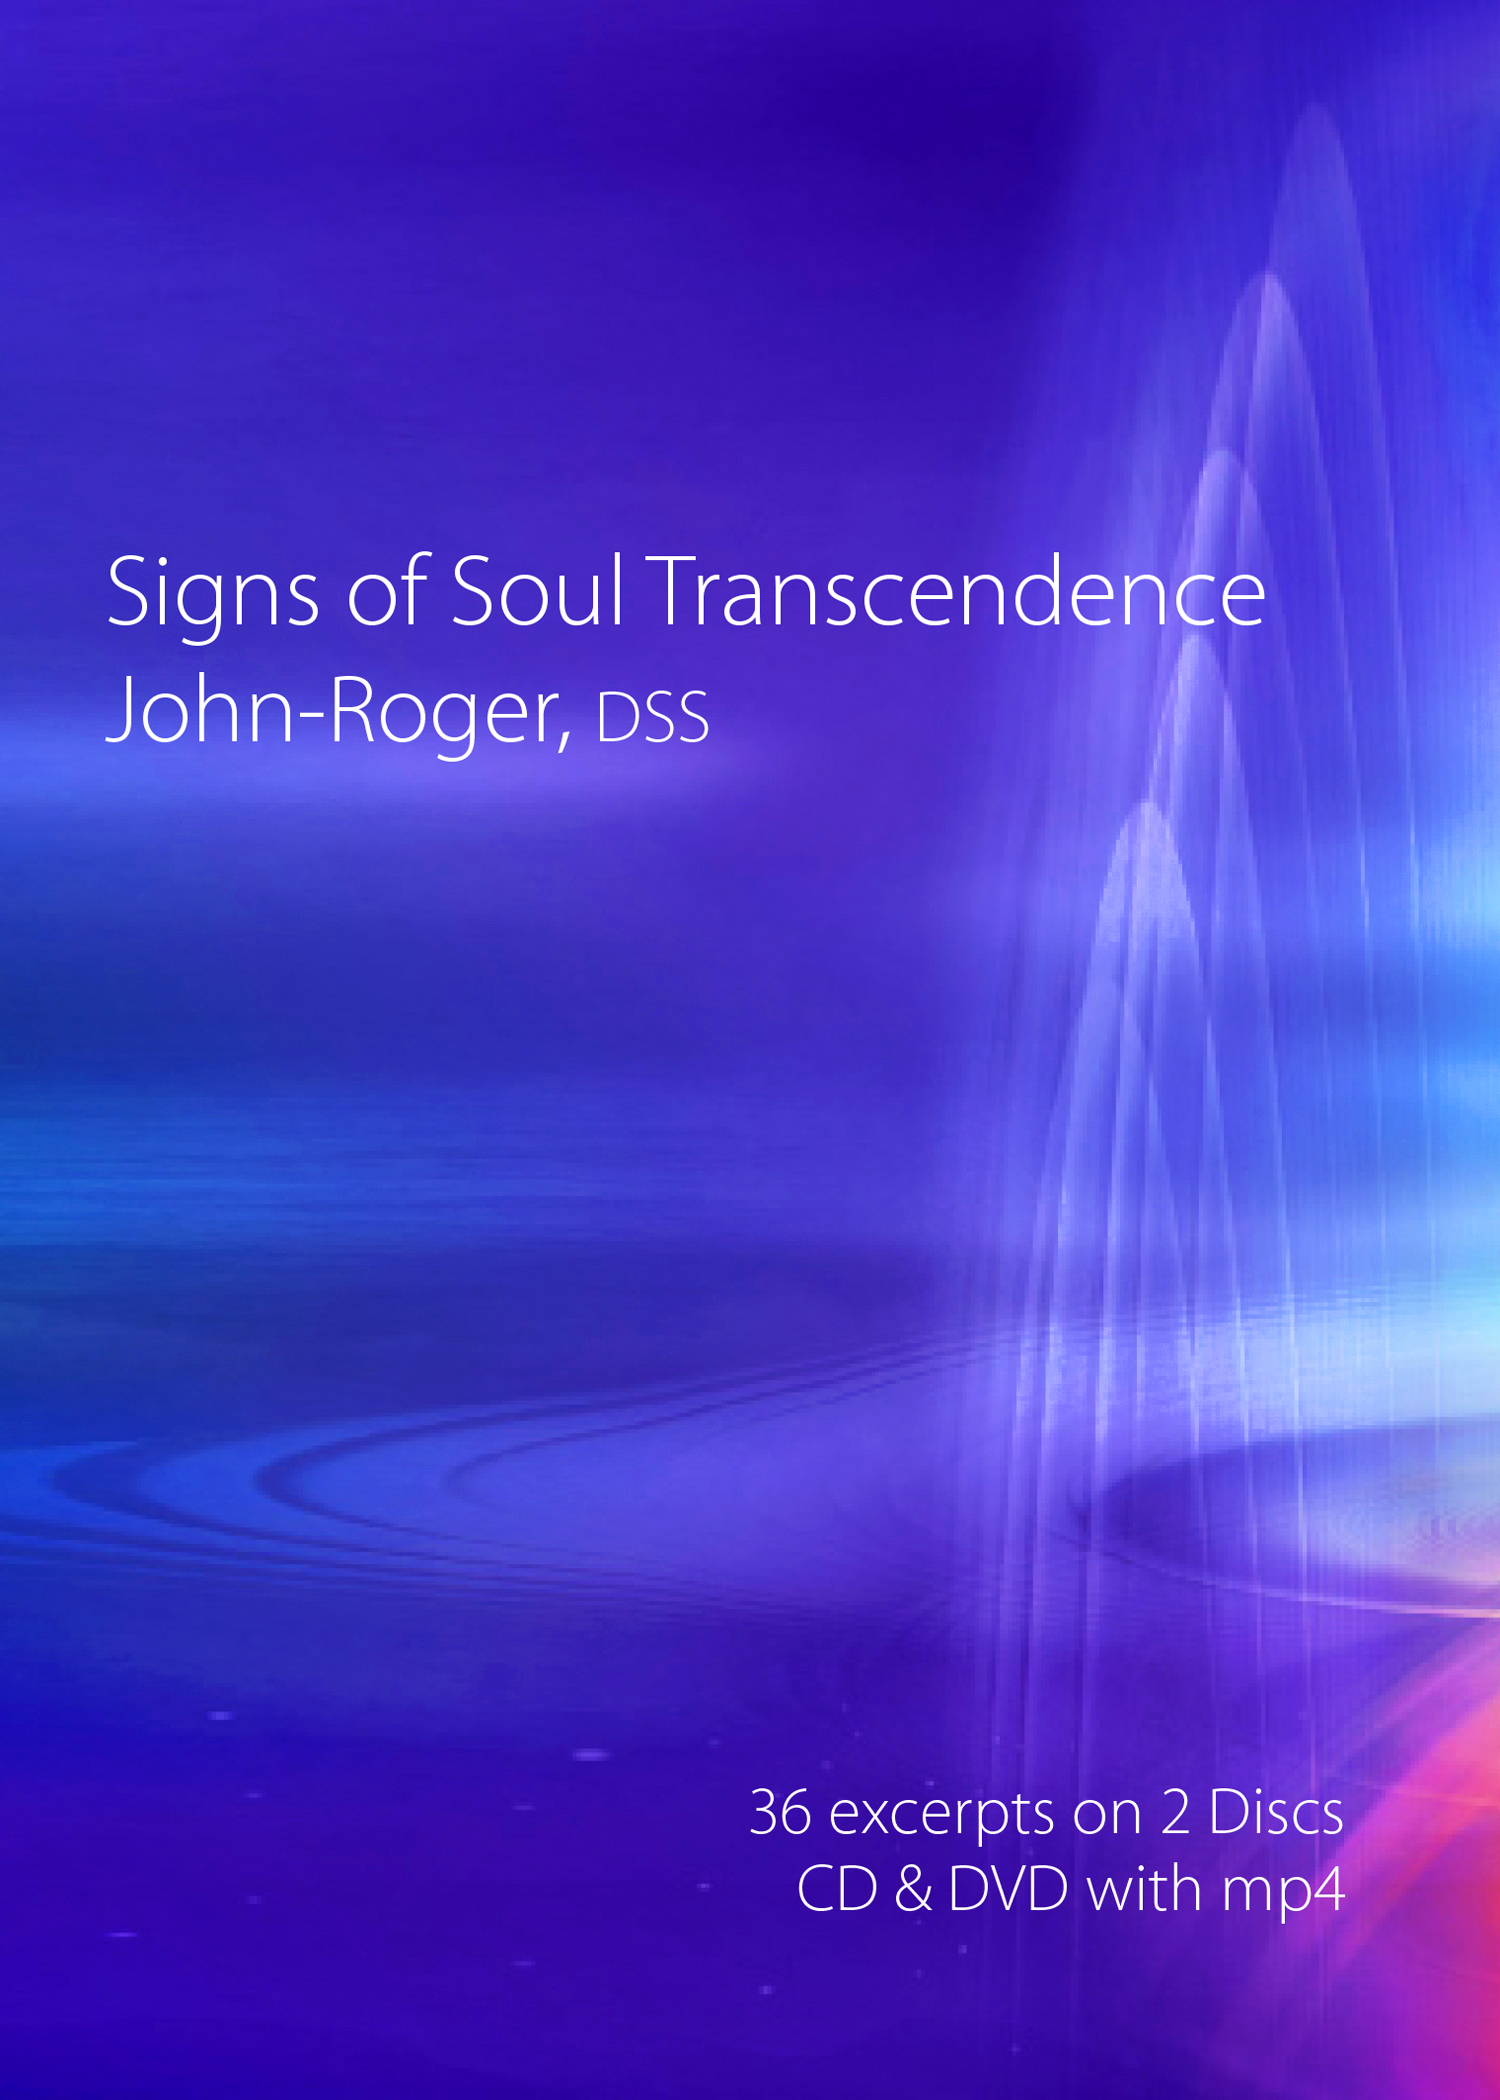 Signs Of Soul Transcendence CD/DVD